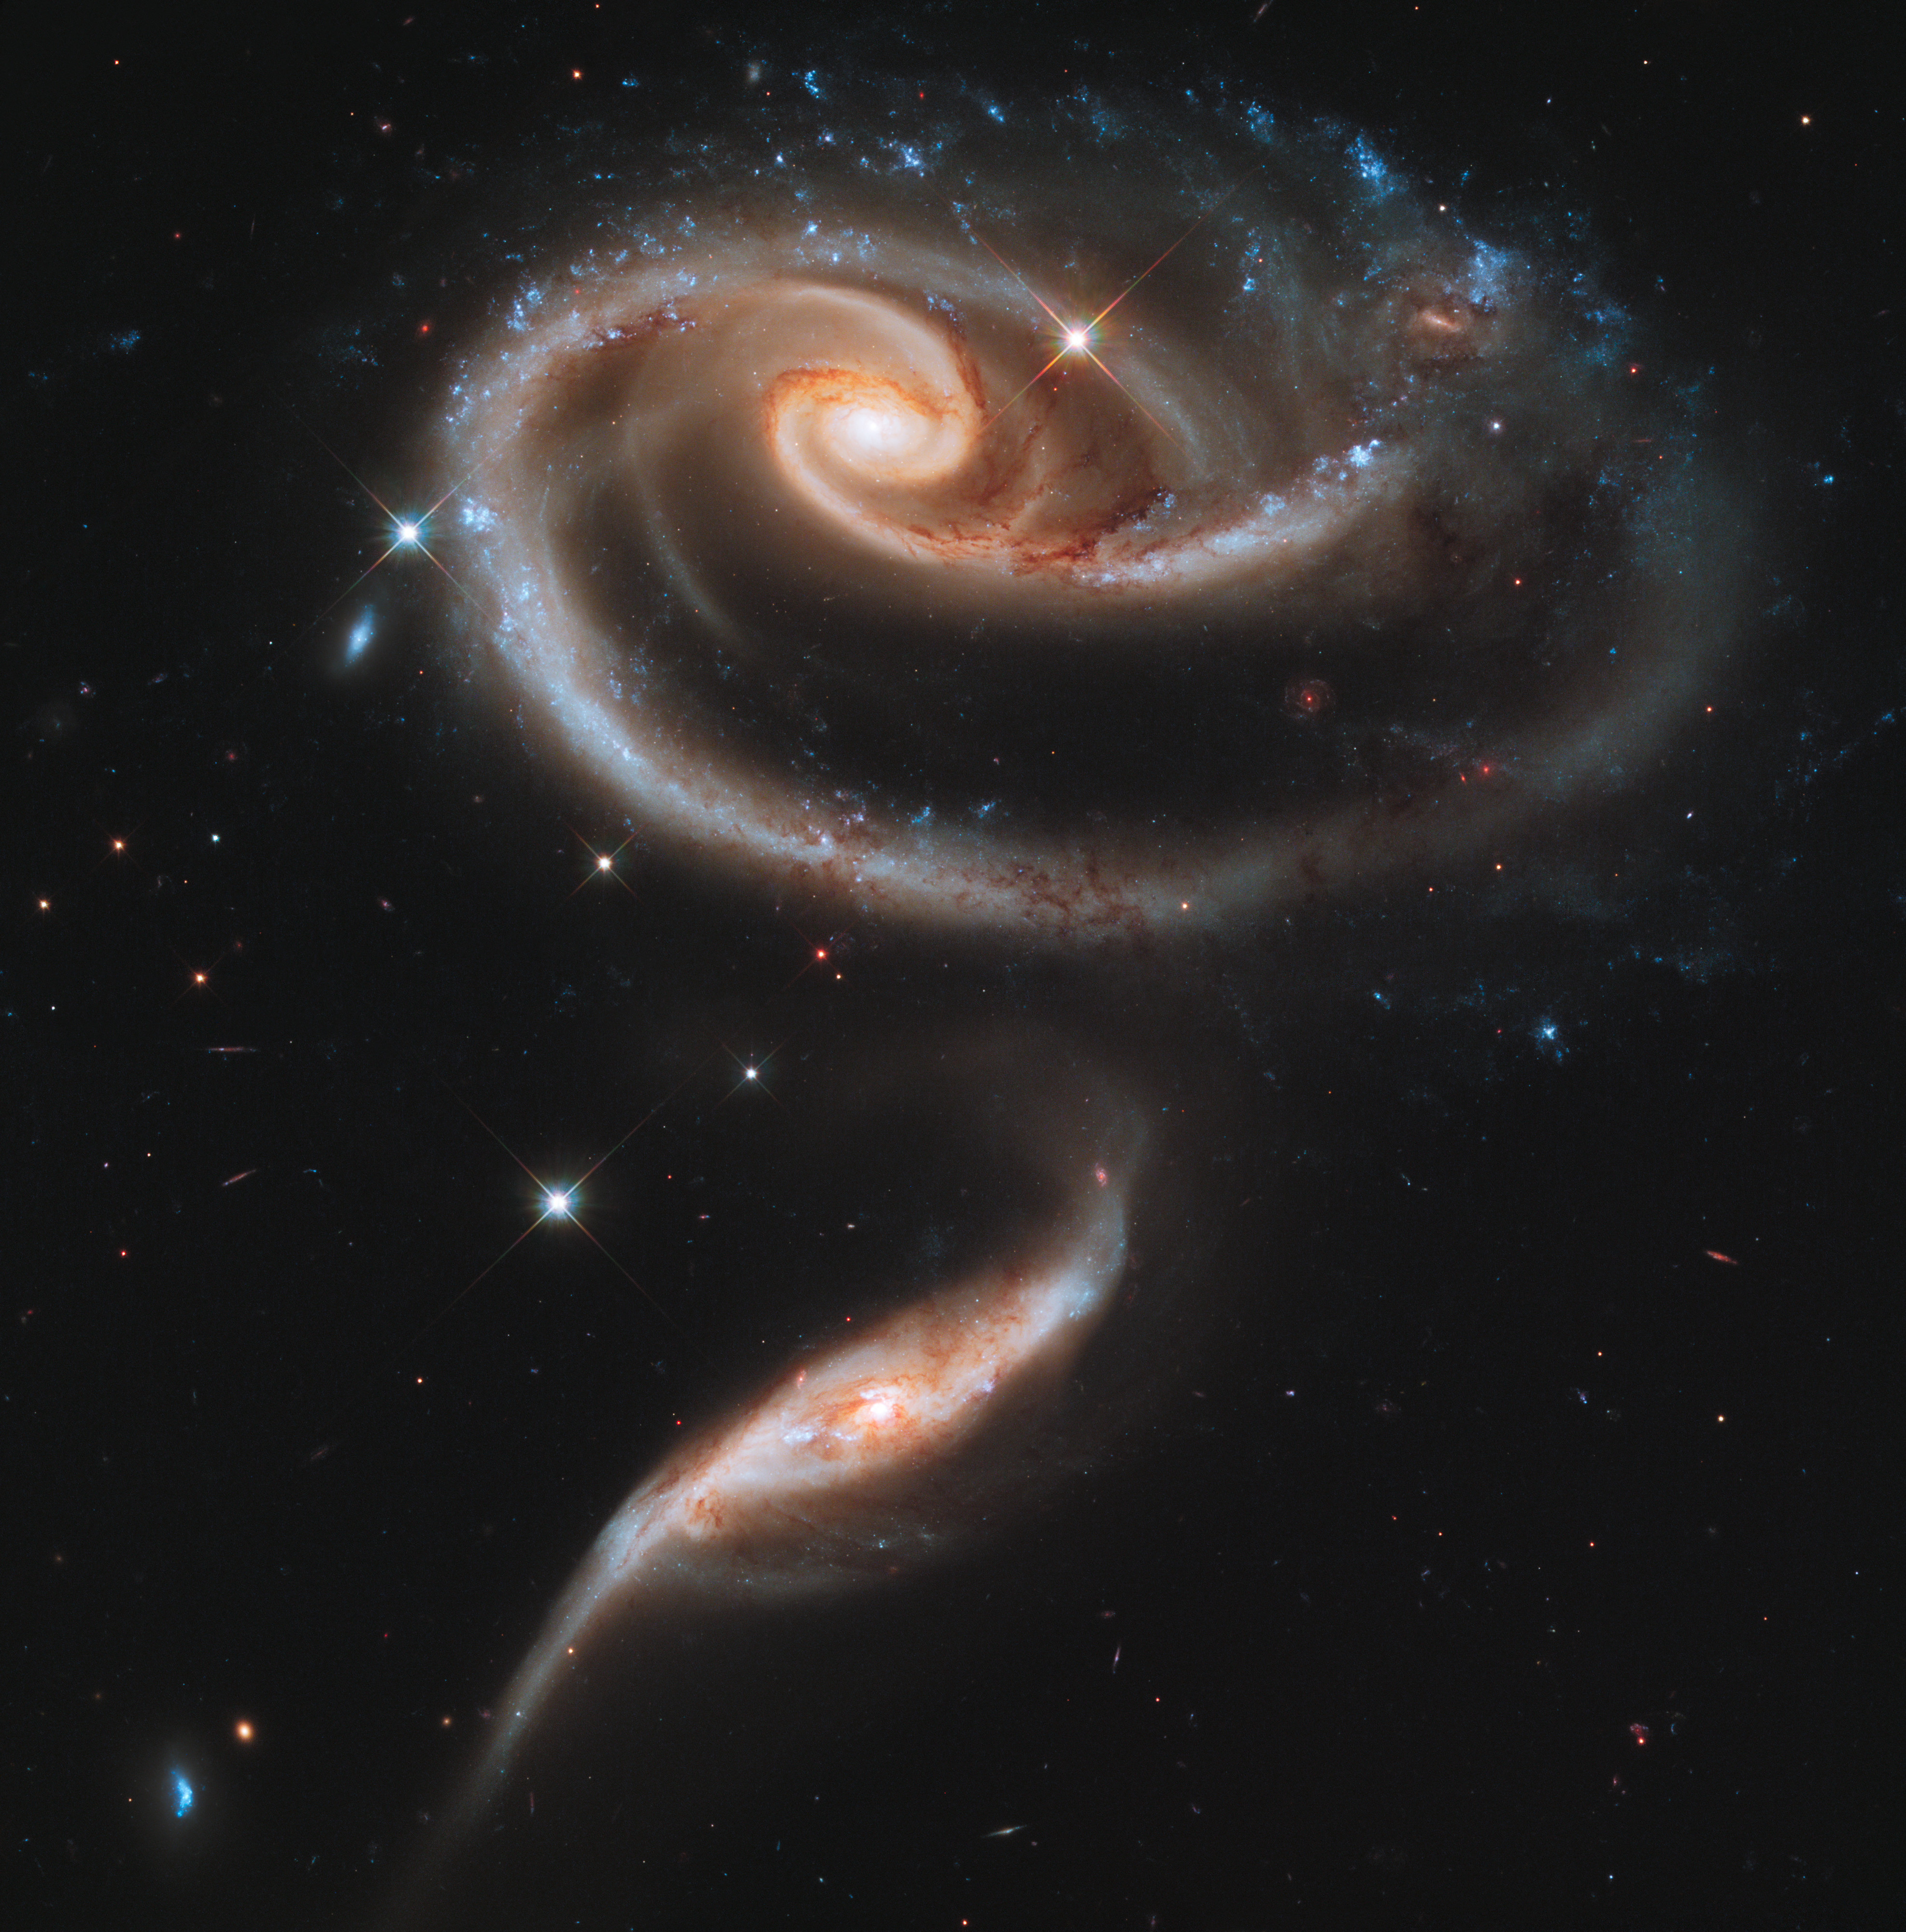 A rose made of galaxies | ESA/Hubble